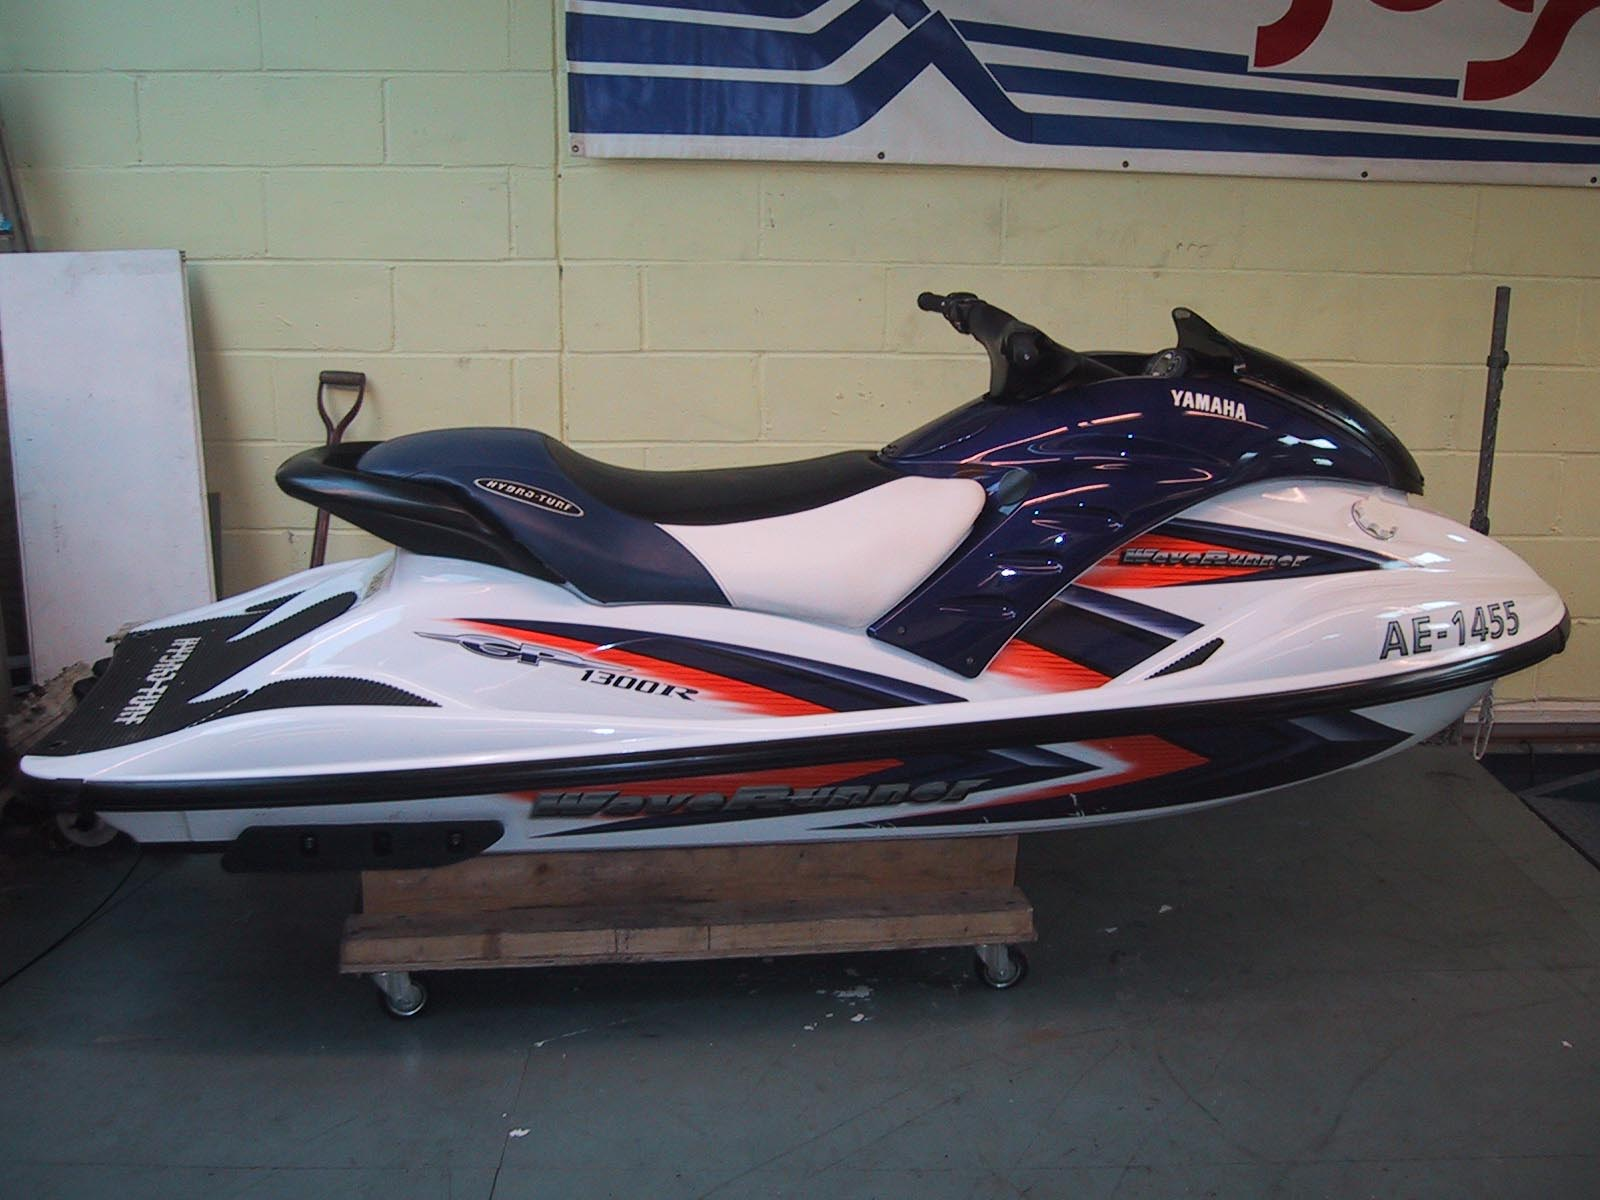 We always have a good range of second-hand jet ski's in stock for sale.